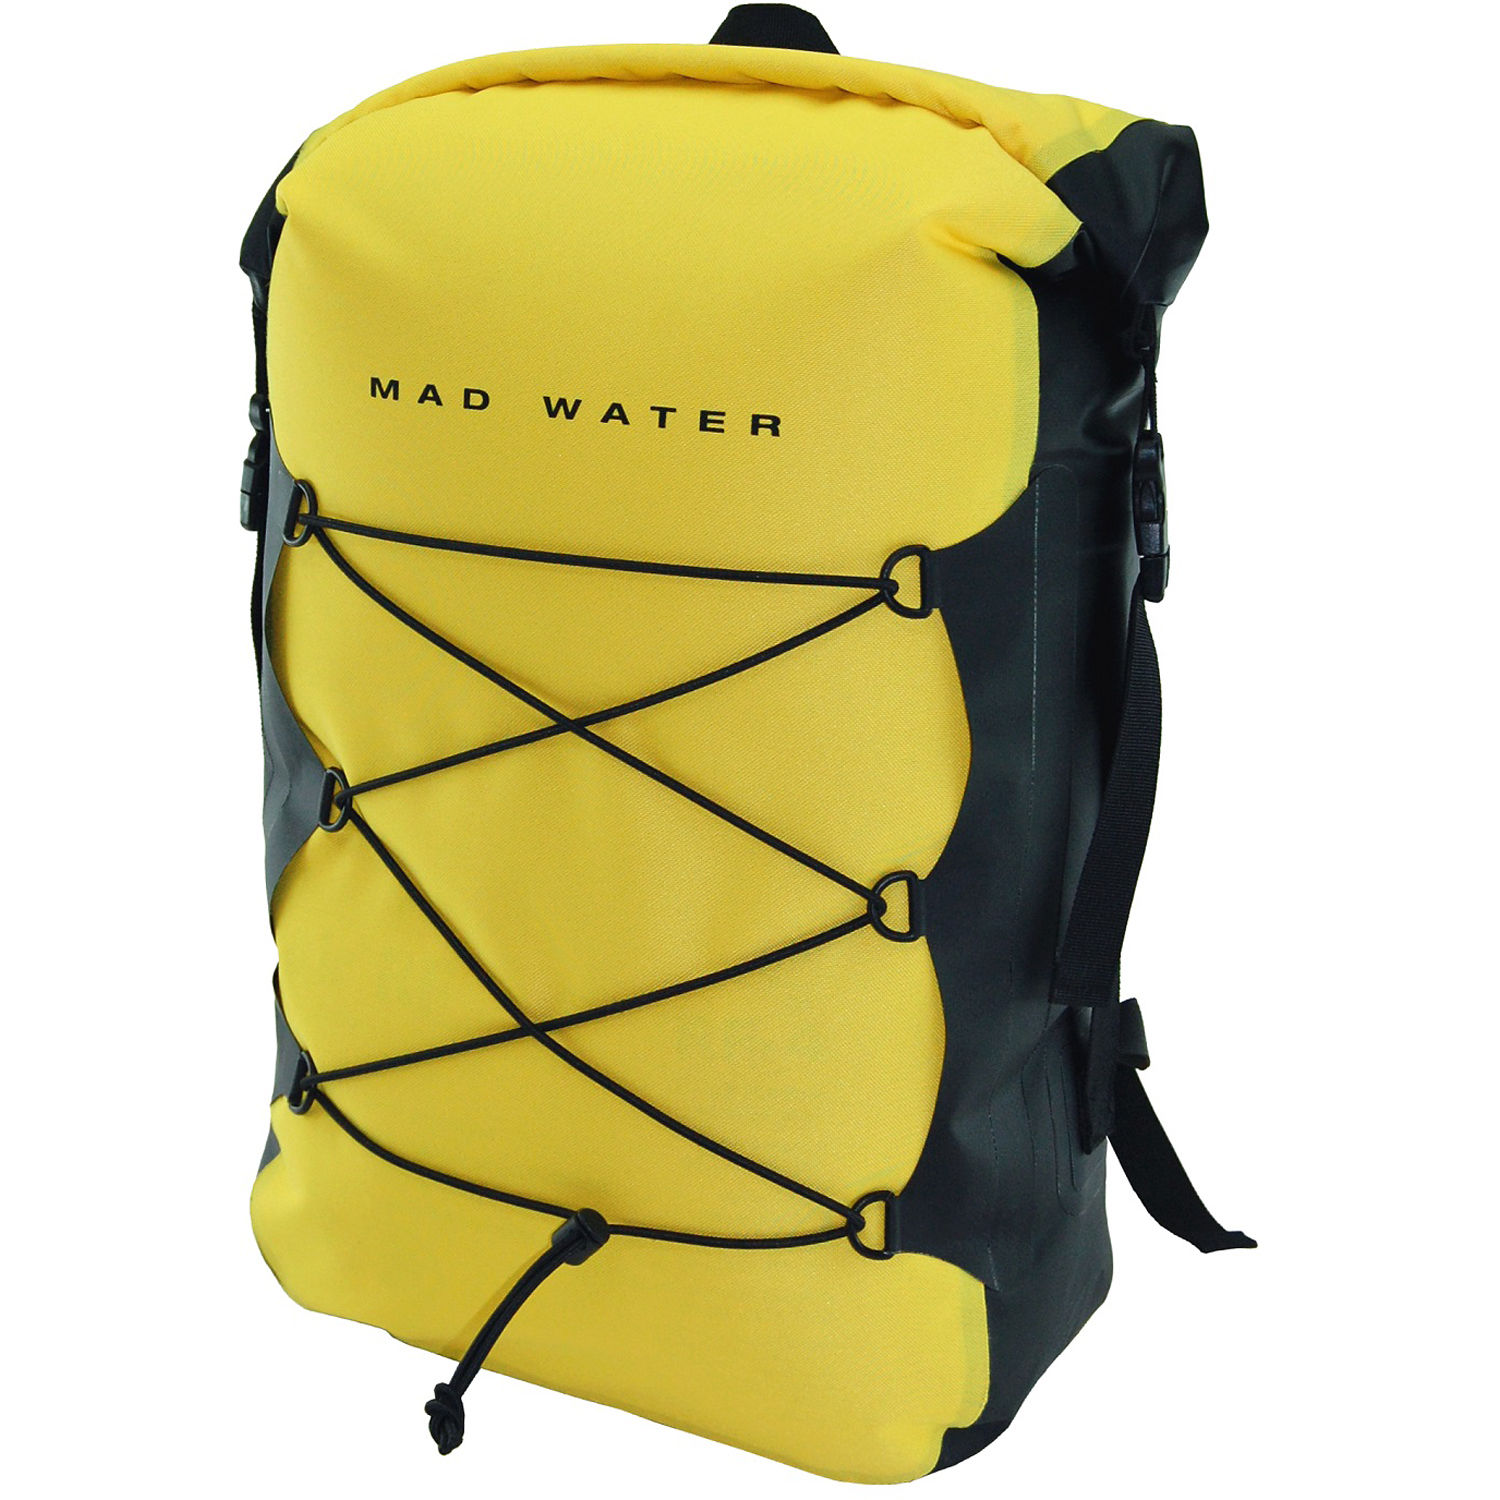 774d574341 Mad Water Classic Roll-Top Waterproof Backpack M43105 B H Photo